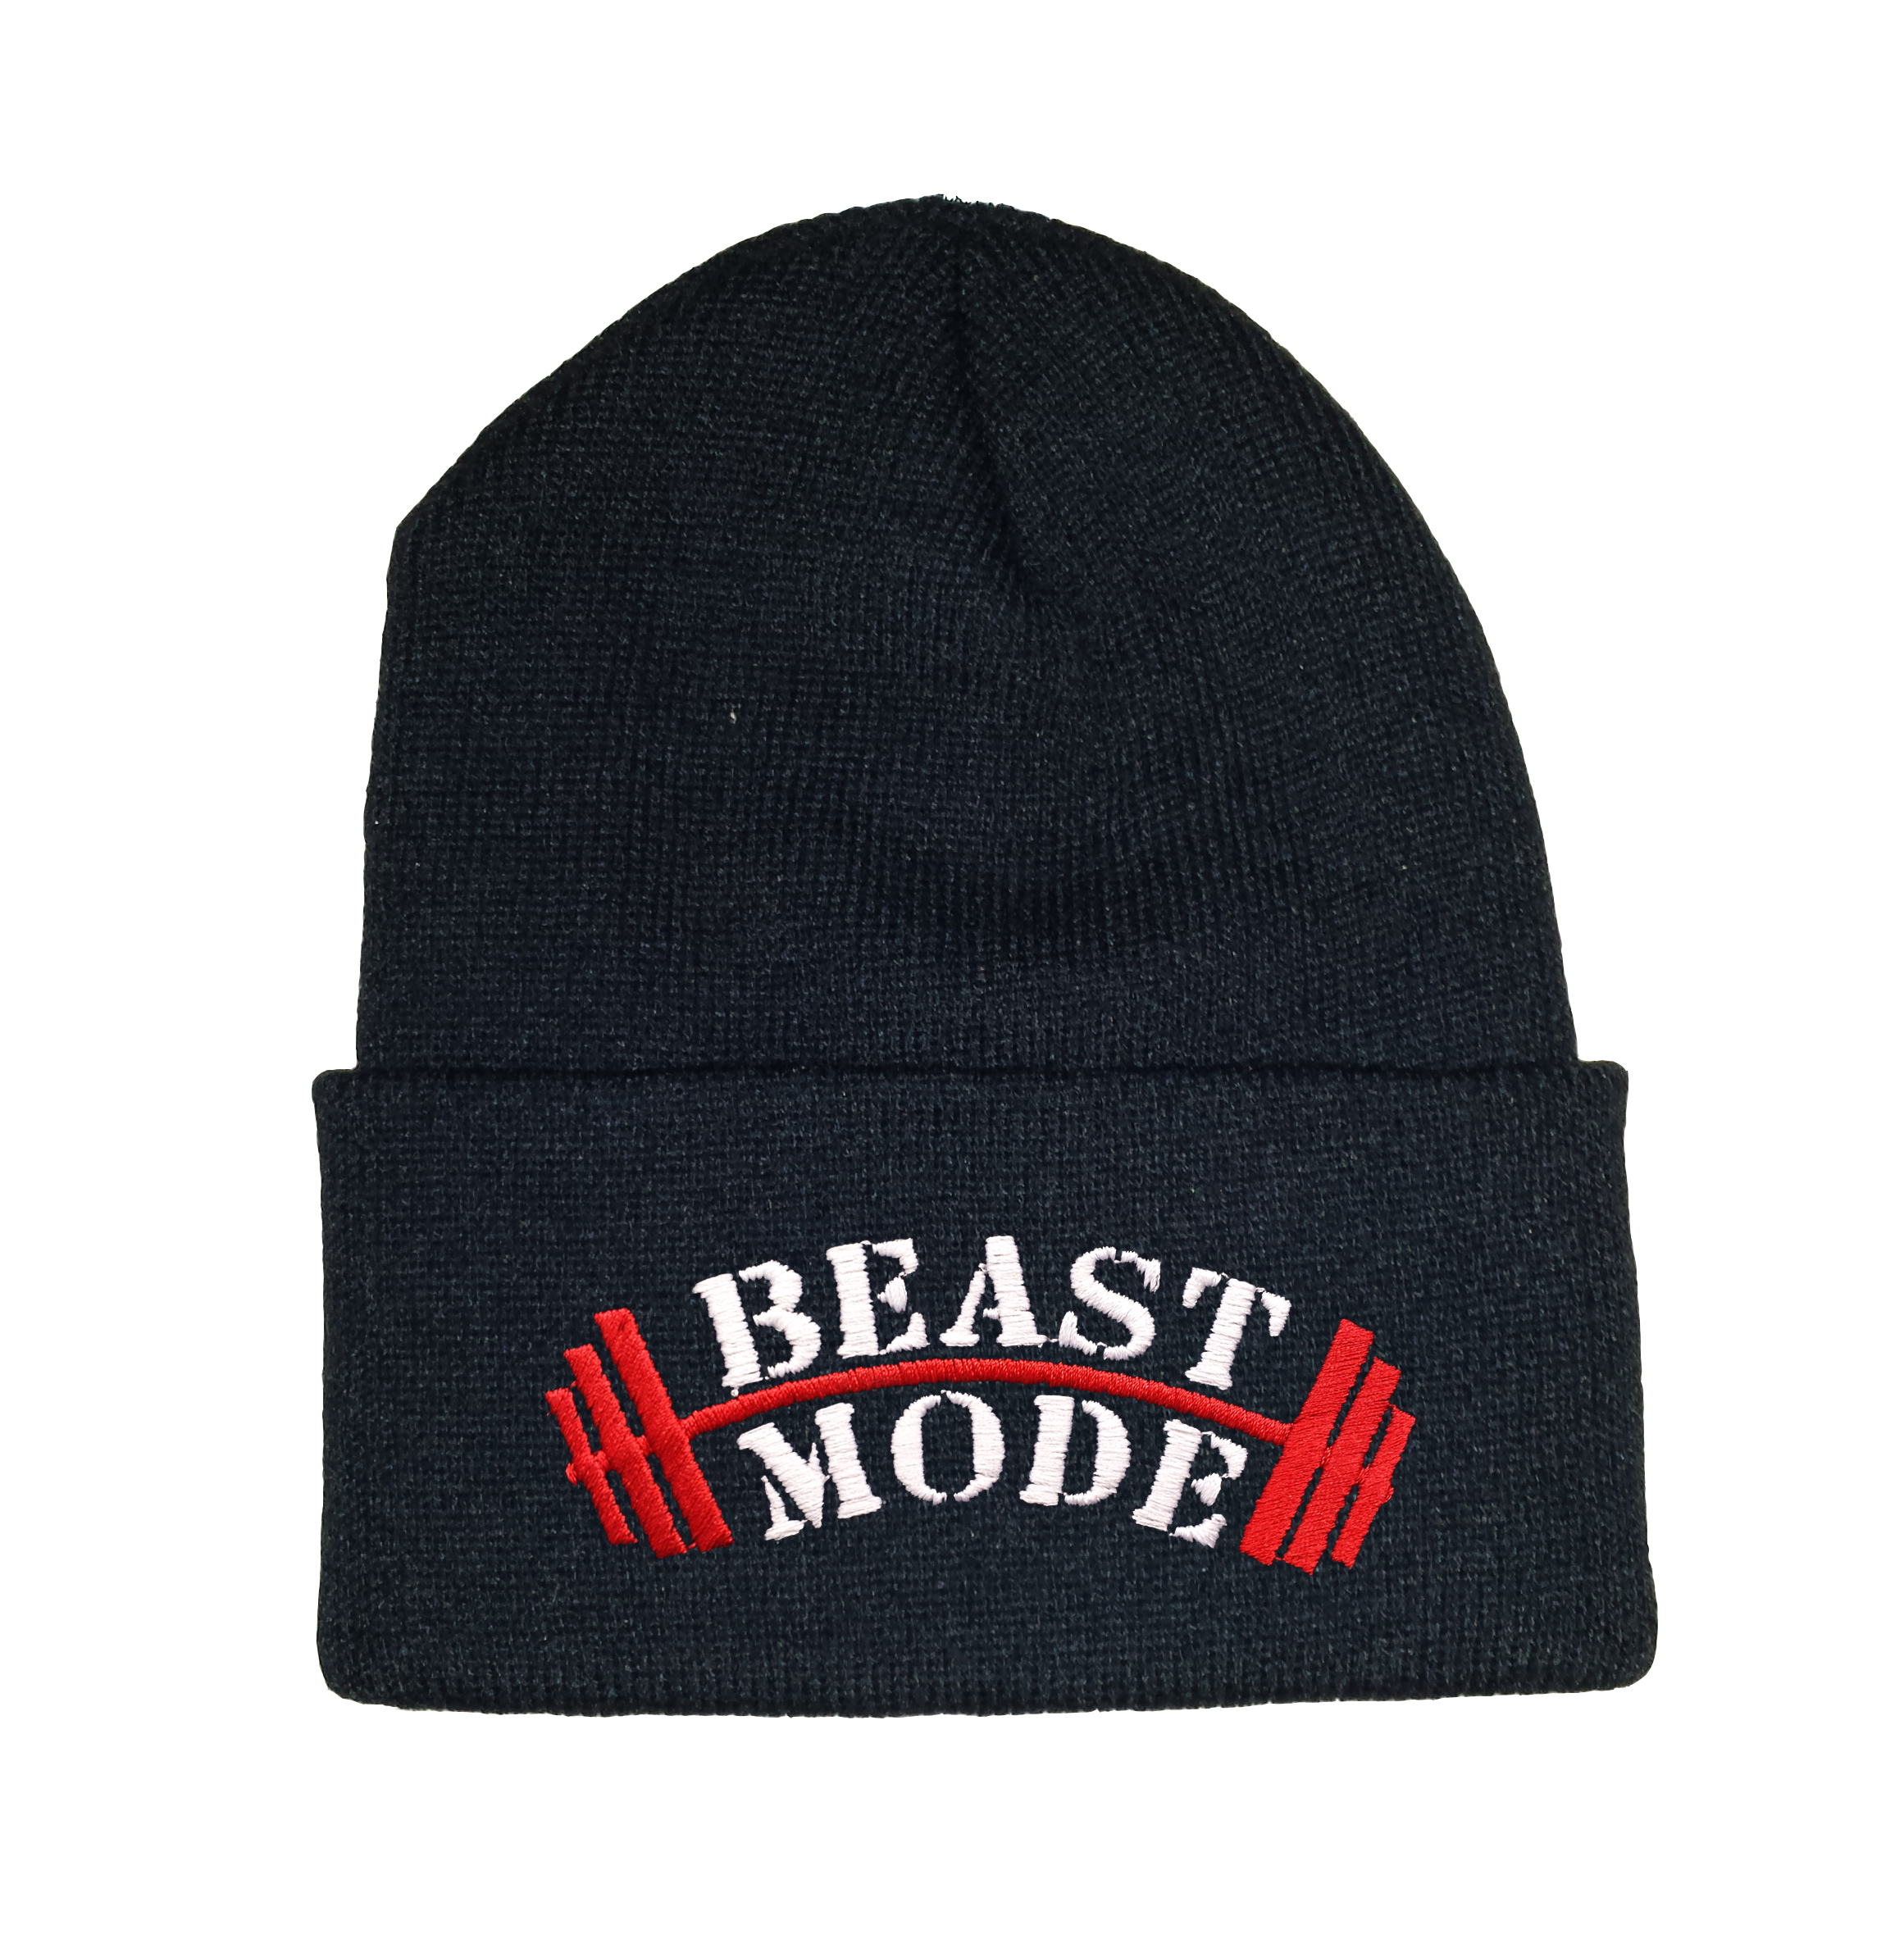 77925672cd1 Beast Mode Beanie Hat · Decal Nation · Online Store Powered by Storenvy